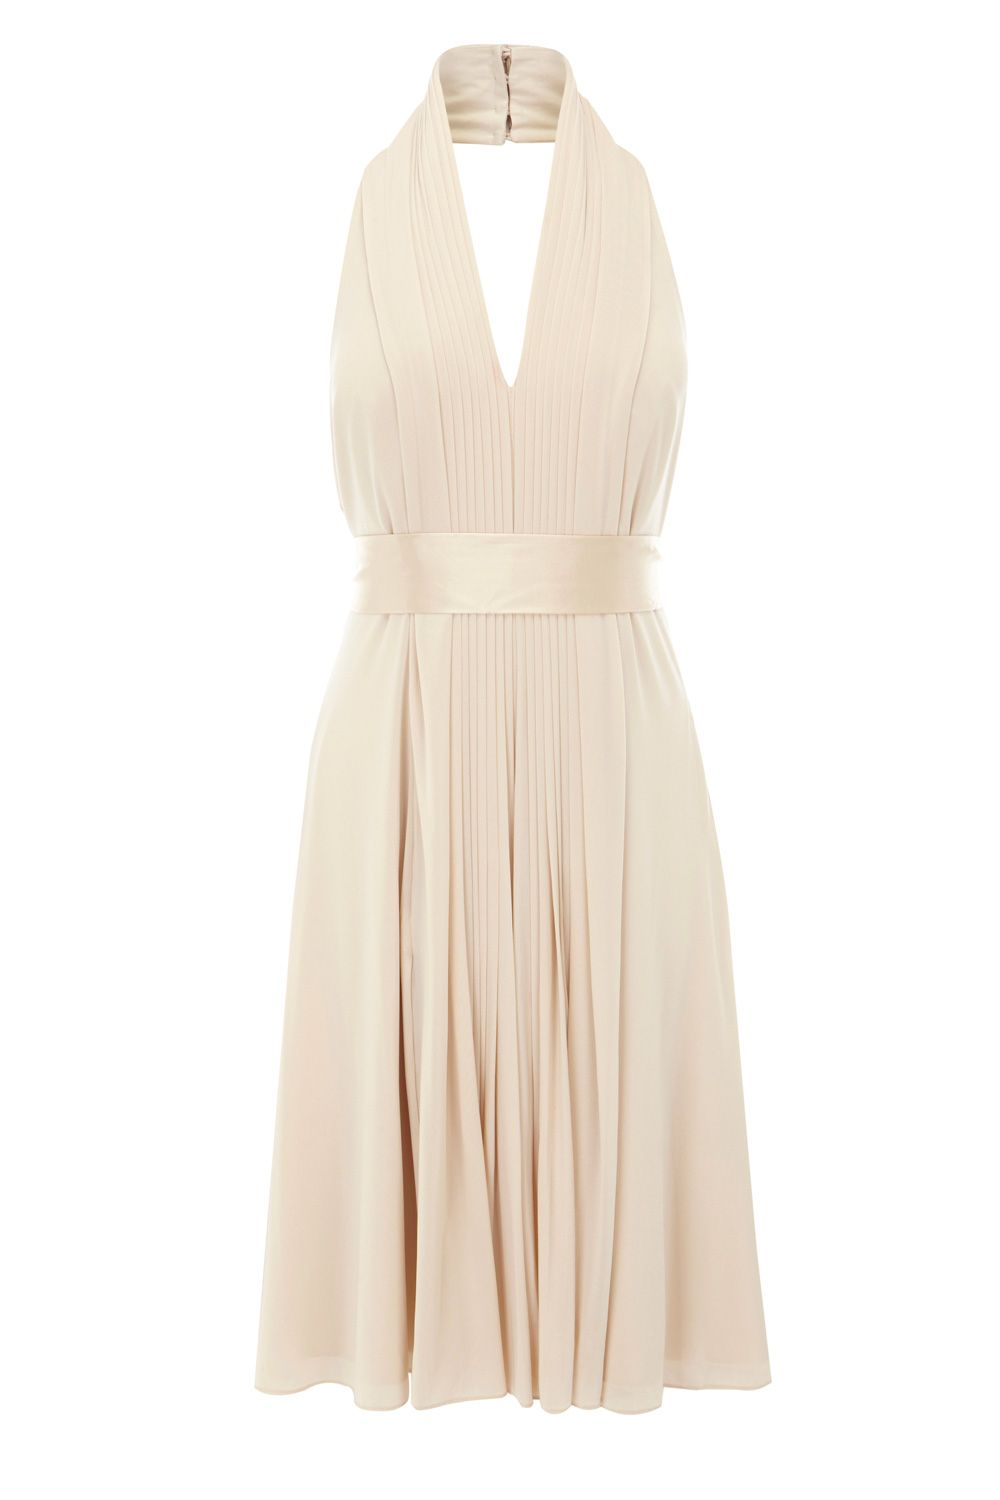 Classic halter dress.  reminds me of Marylin Monroe